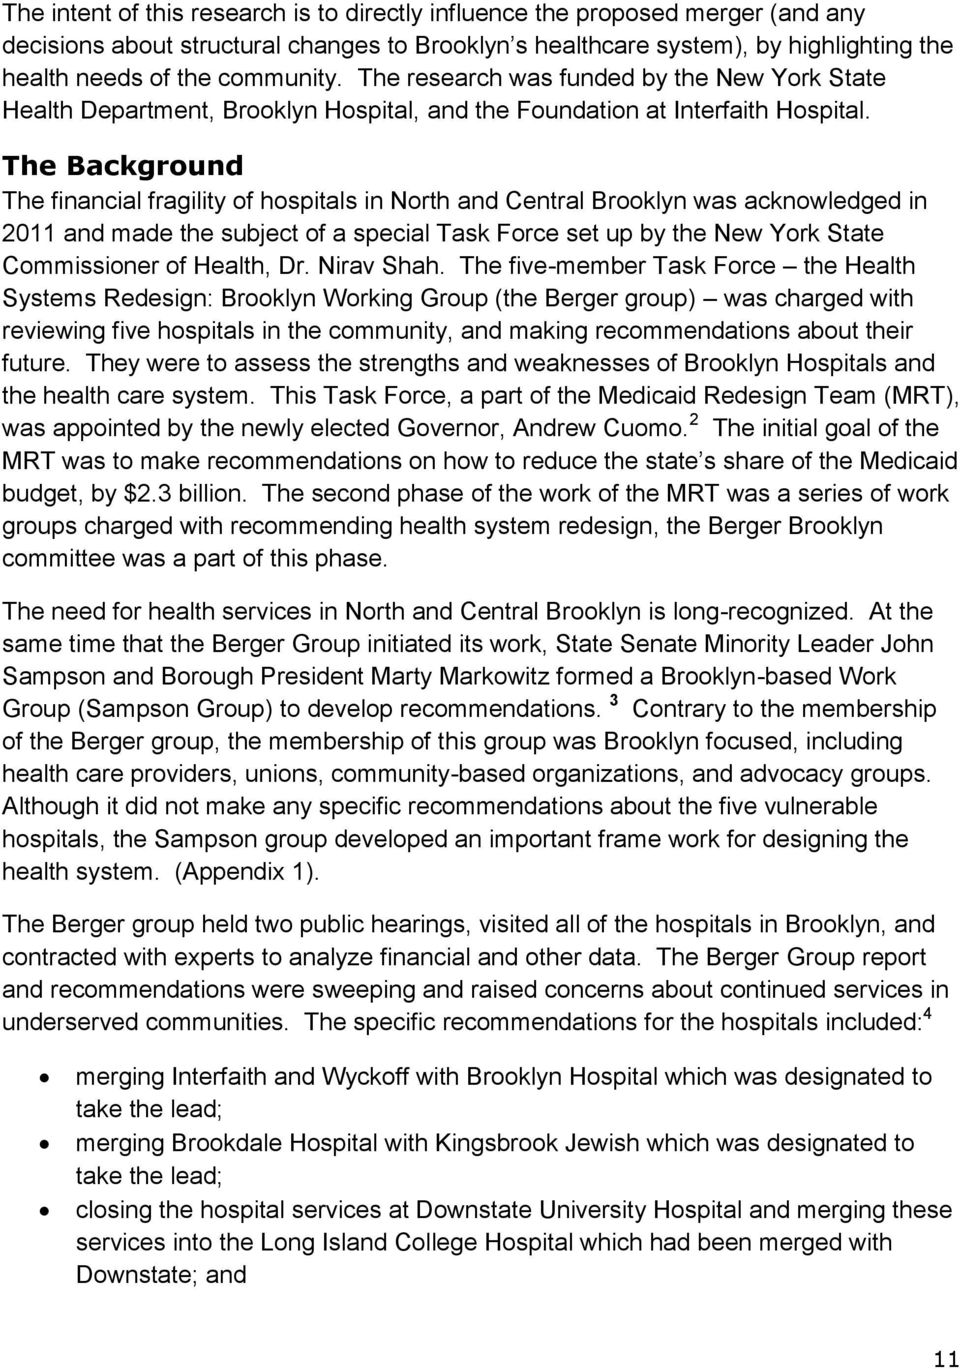 The Background The financial fragility of hospitals in North and Central Brooklyn was acknowledged in 2011 and made the subject of a special Task Force set up by the New York State Commissioner of